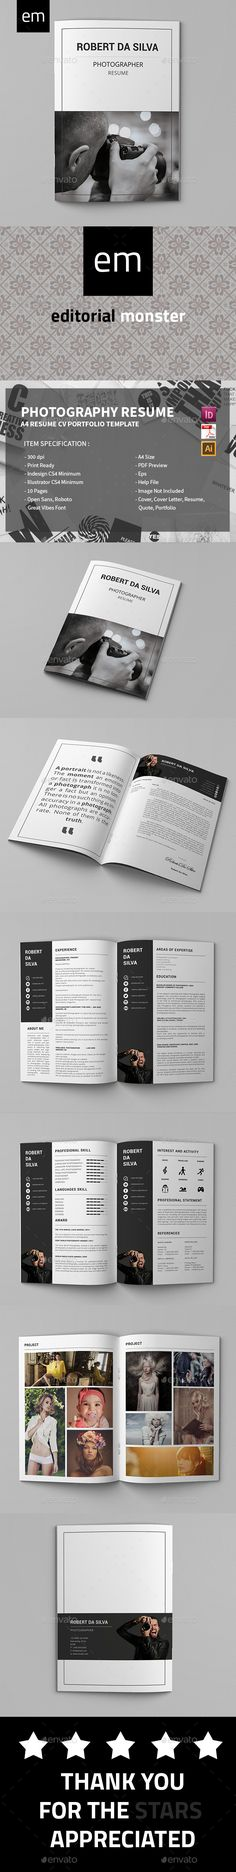 Make Resume Free Creative Director Resume